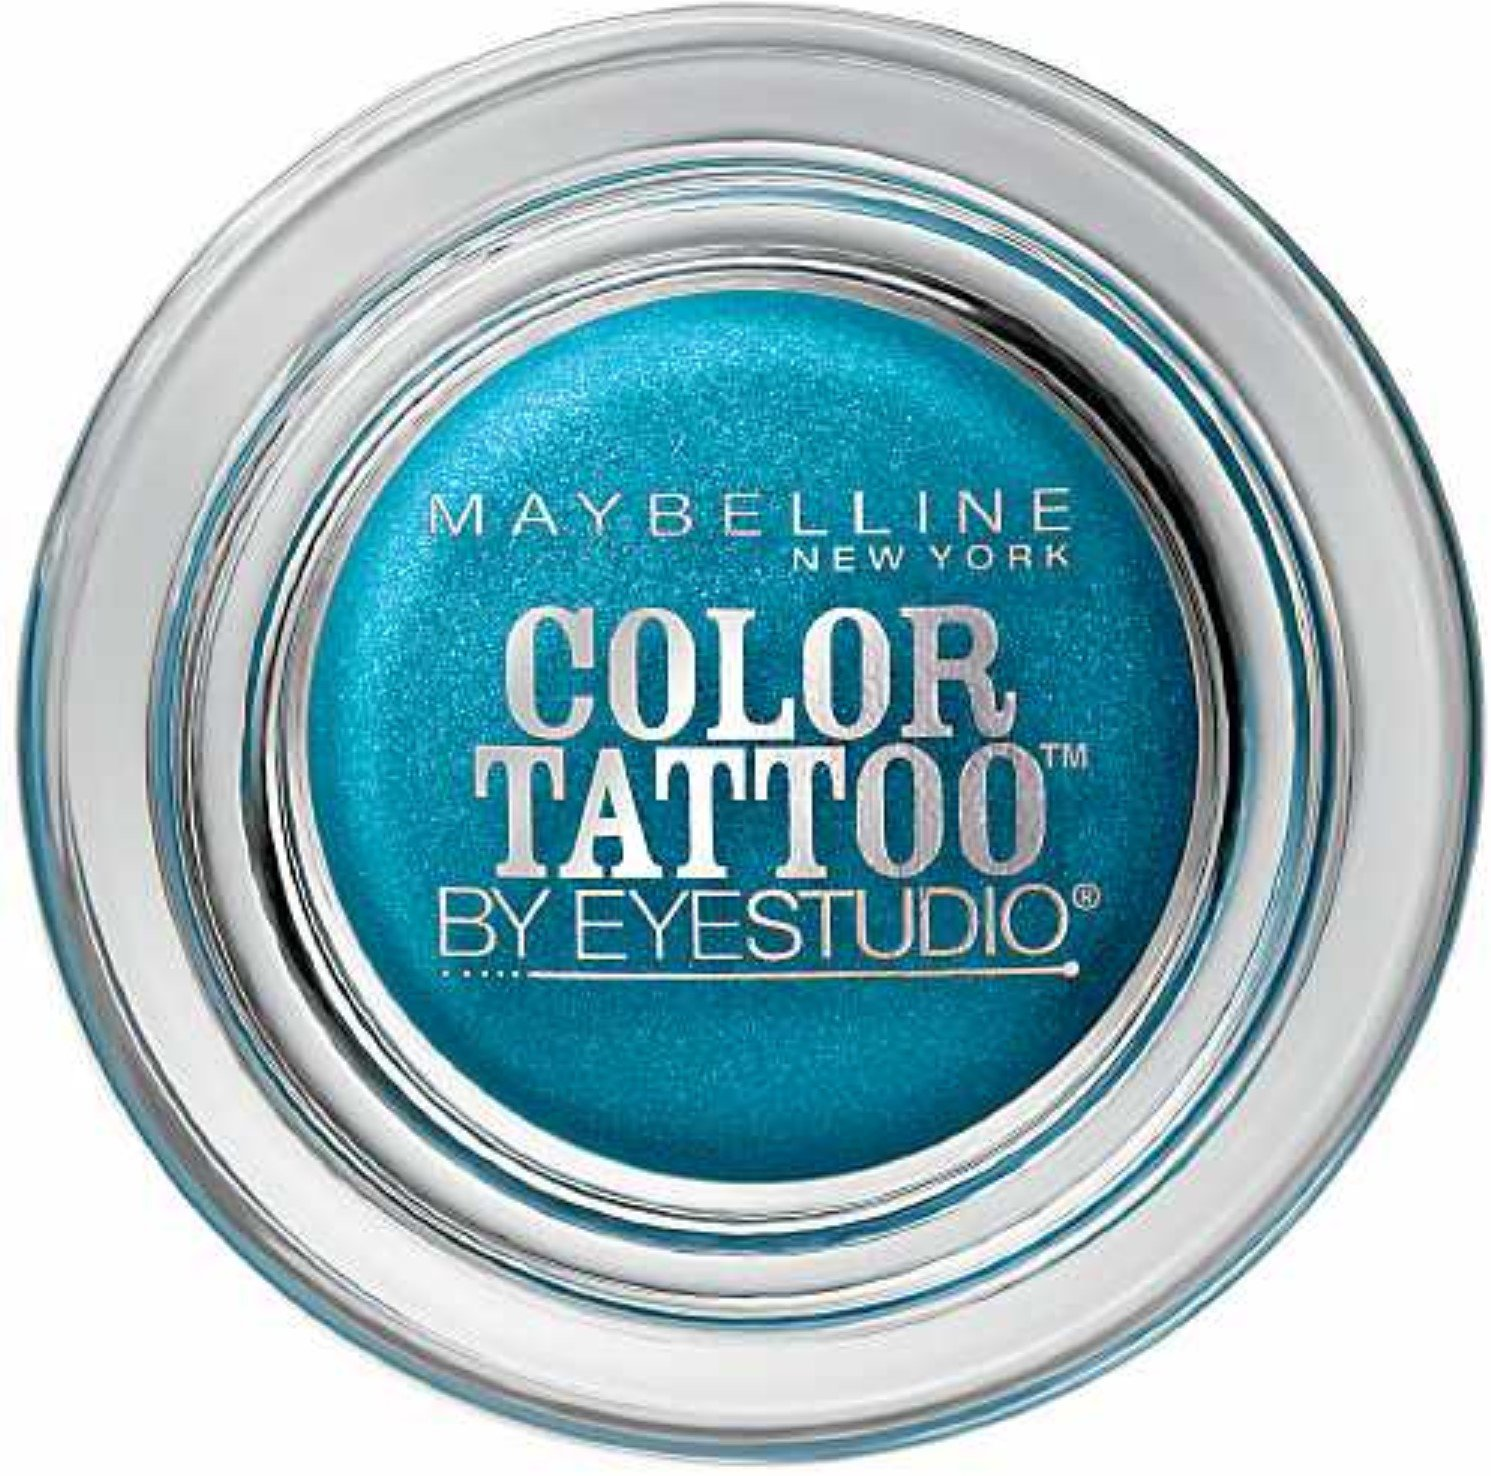 Maybelline Color Tattoo Eyeshadow, Tenacious Teal